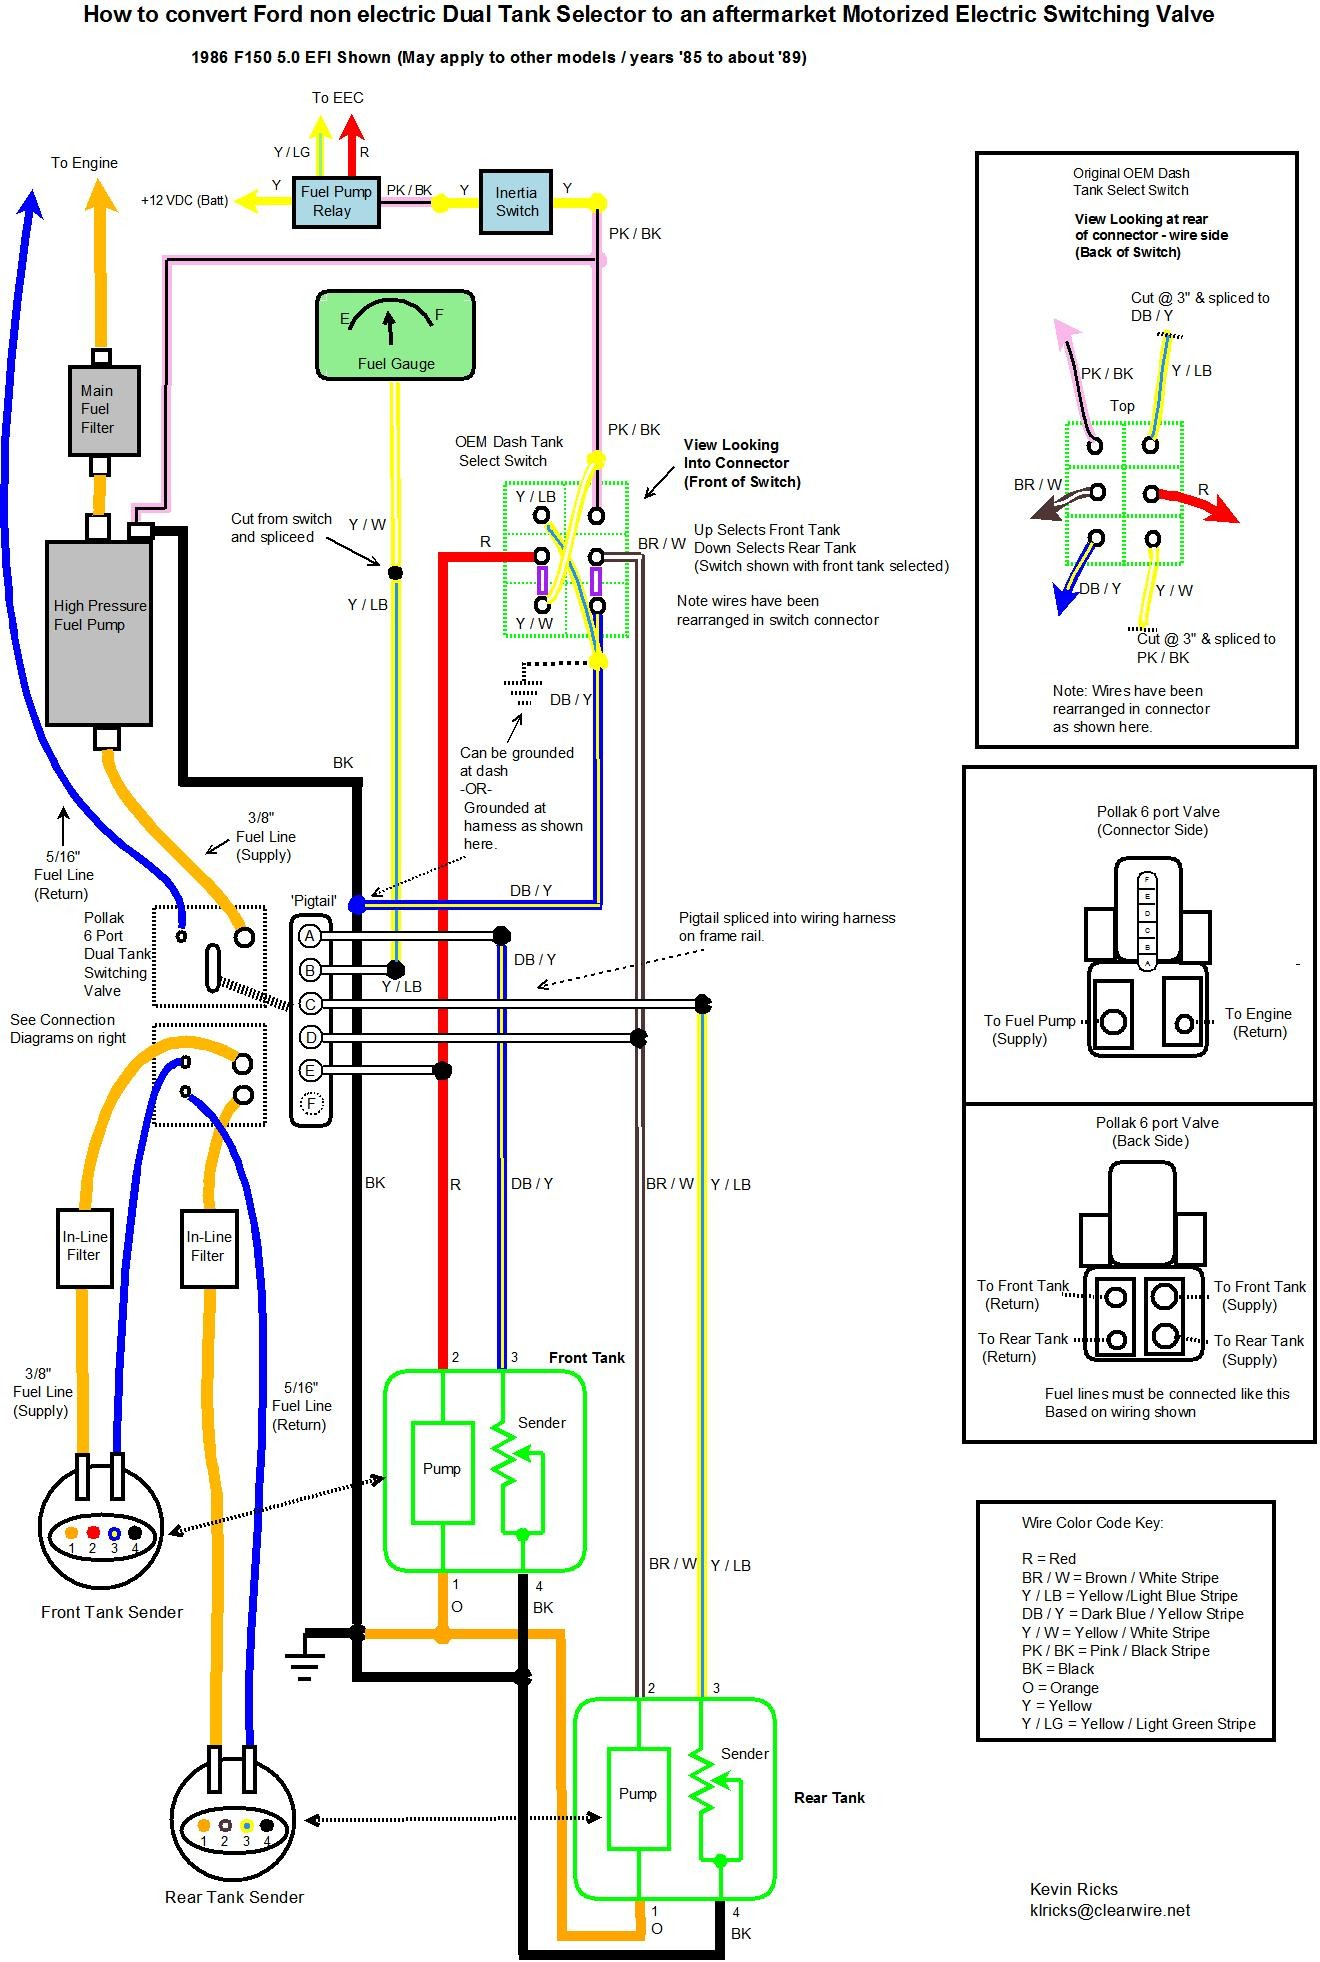 66 Chevy Ignition Switch Wiring Diagram Trusted Diagrams 1985 Truck 1956